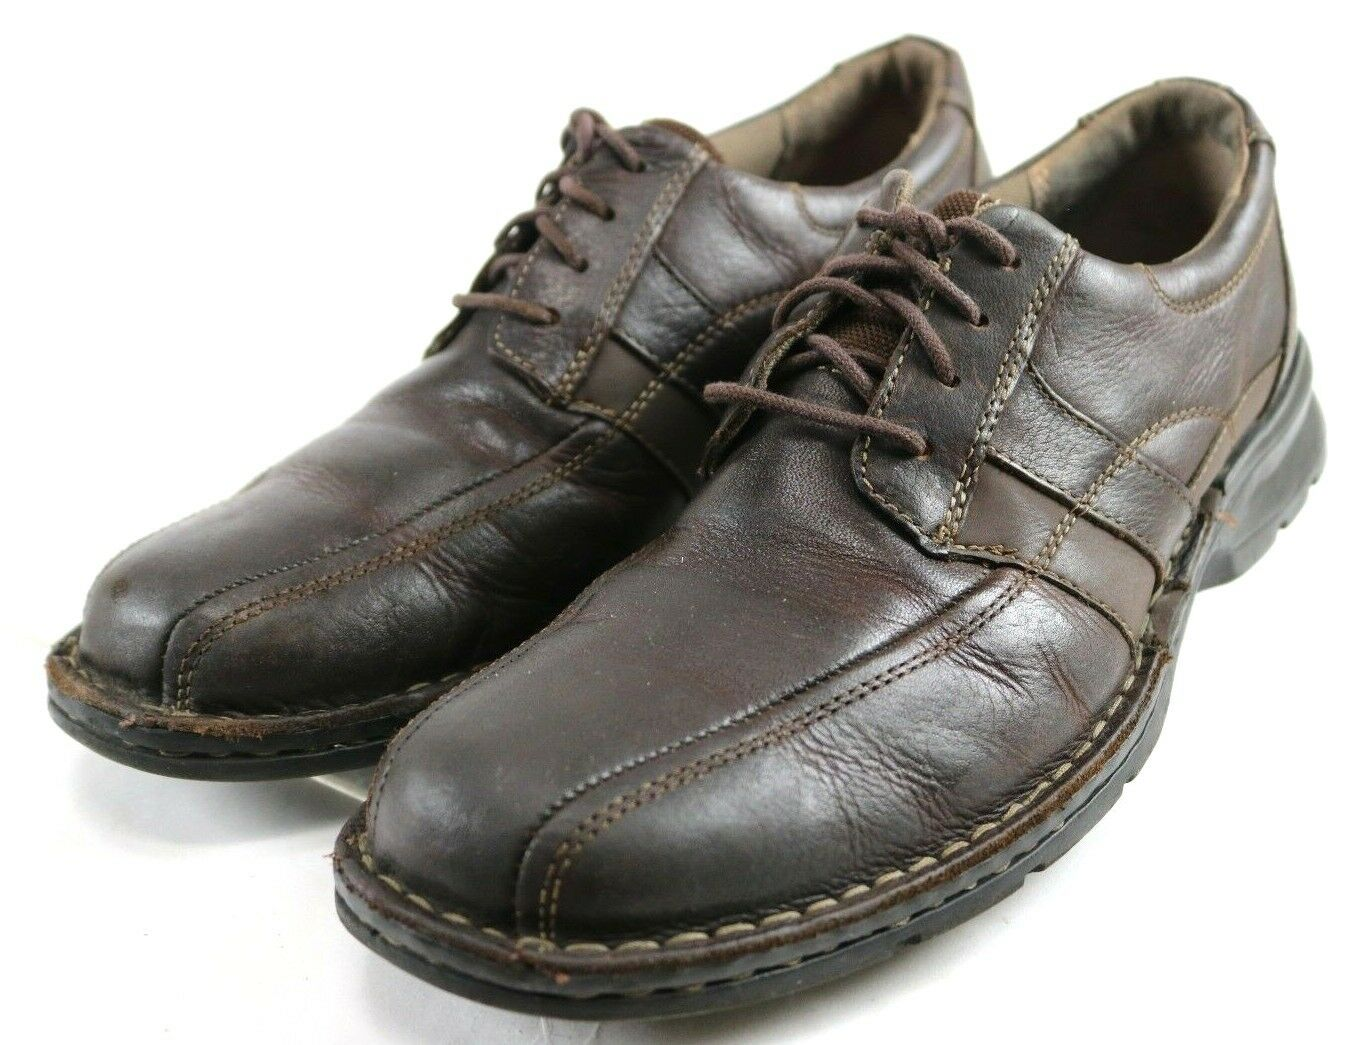 Clarks Espace Oxfords  Men's Lace-Up Casual shoes Size 9.5 Leather Brown